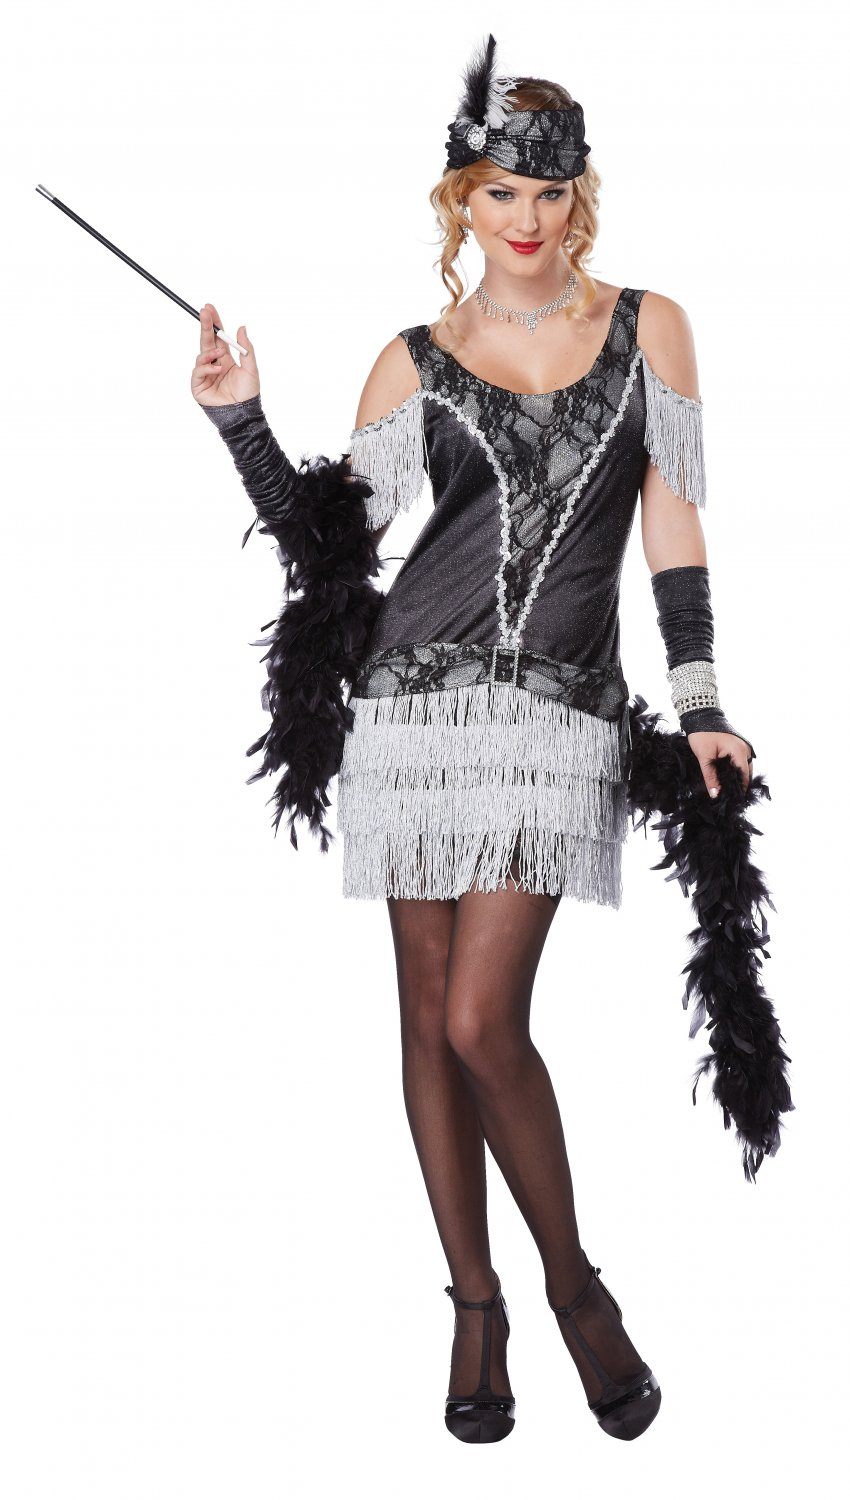 Razzle Dazzle Fashion Flapper Adult Costume Size: X-Small #01352